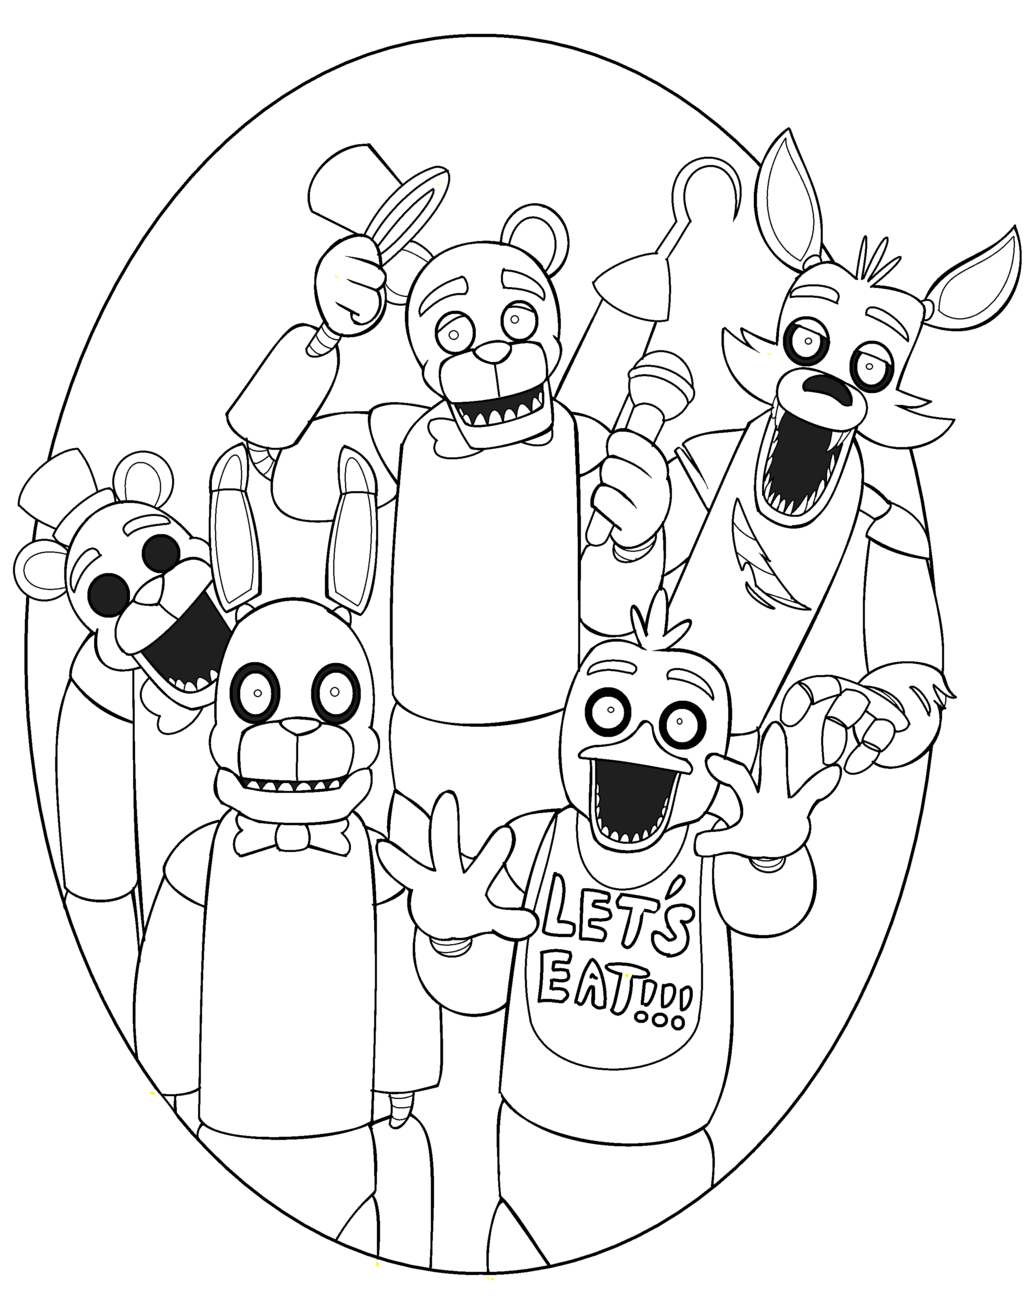 graphic regarding Free Printable Five Nights at Freddy's Coloring Pages called Extraordinary Strategy Fnaf Coloring Internet pages Printable 5 Evenings At